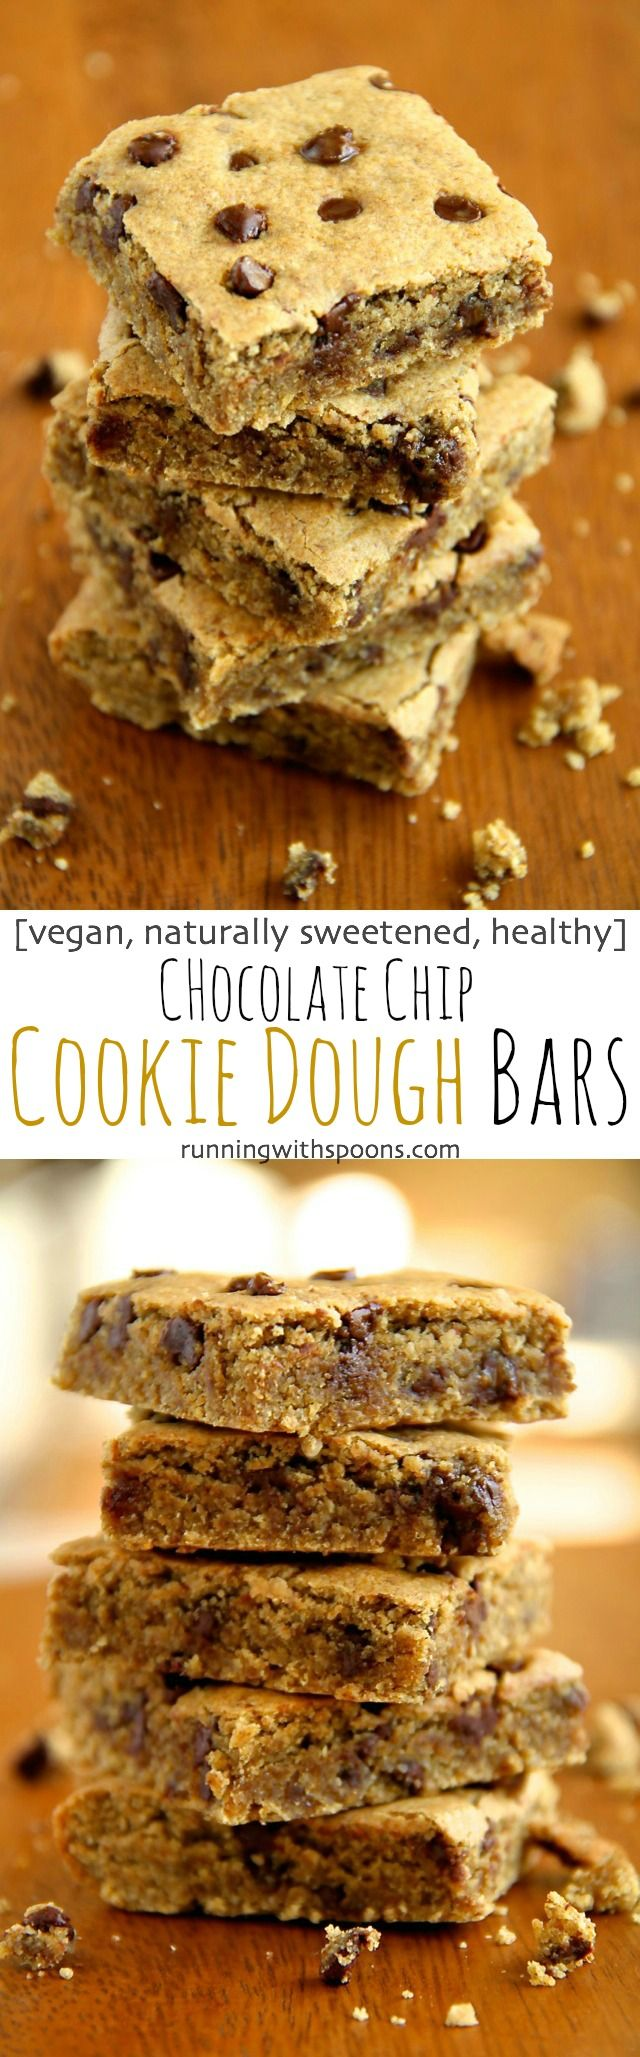 Chocolate Chip Cookie Dough Bars | running with spoons